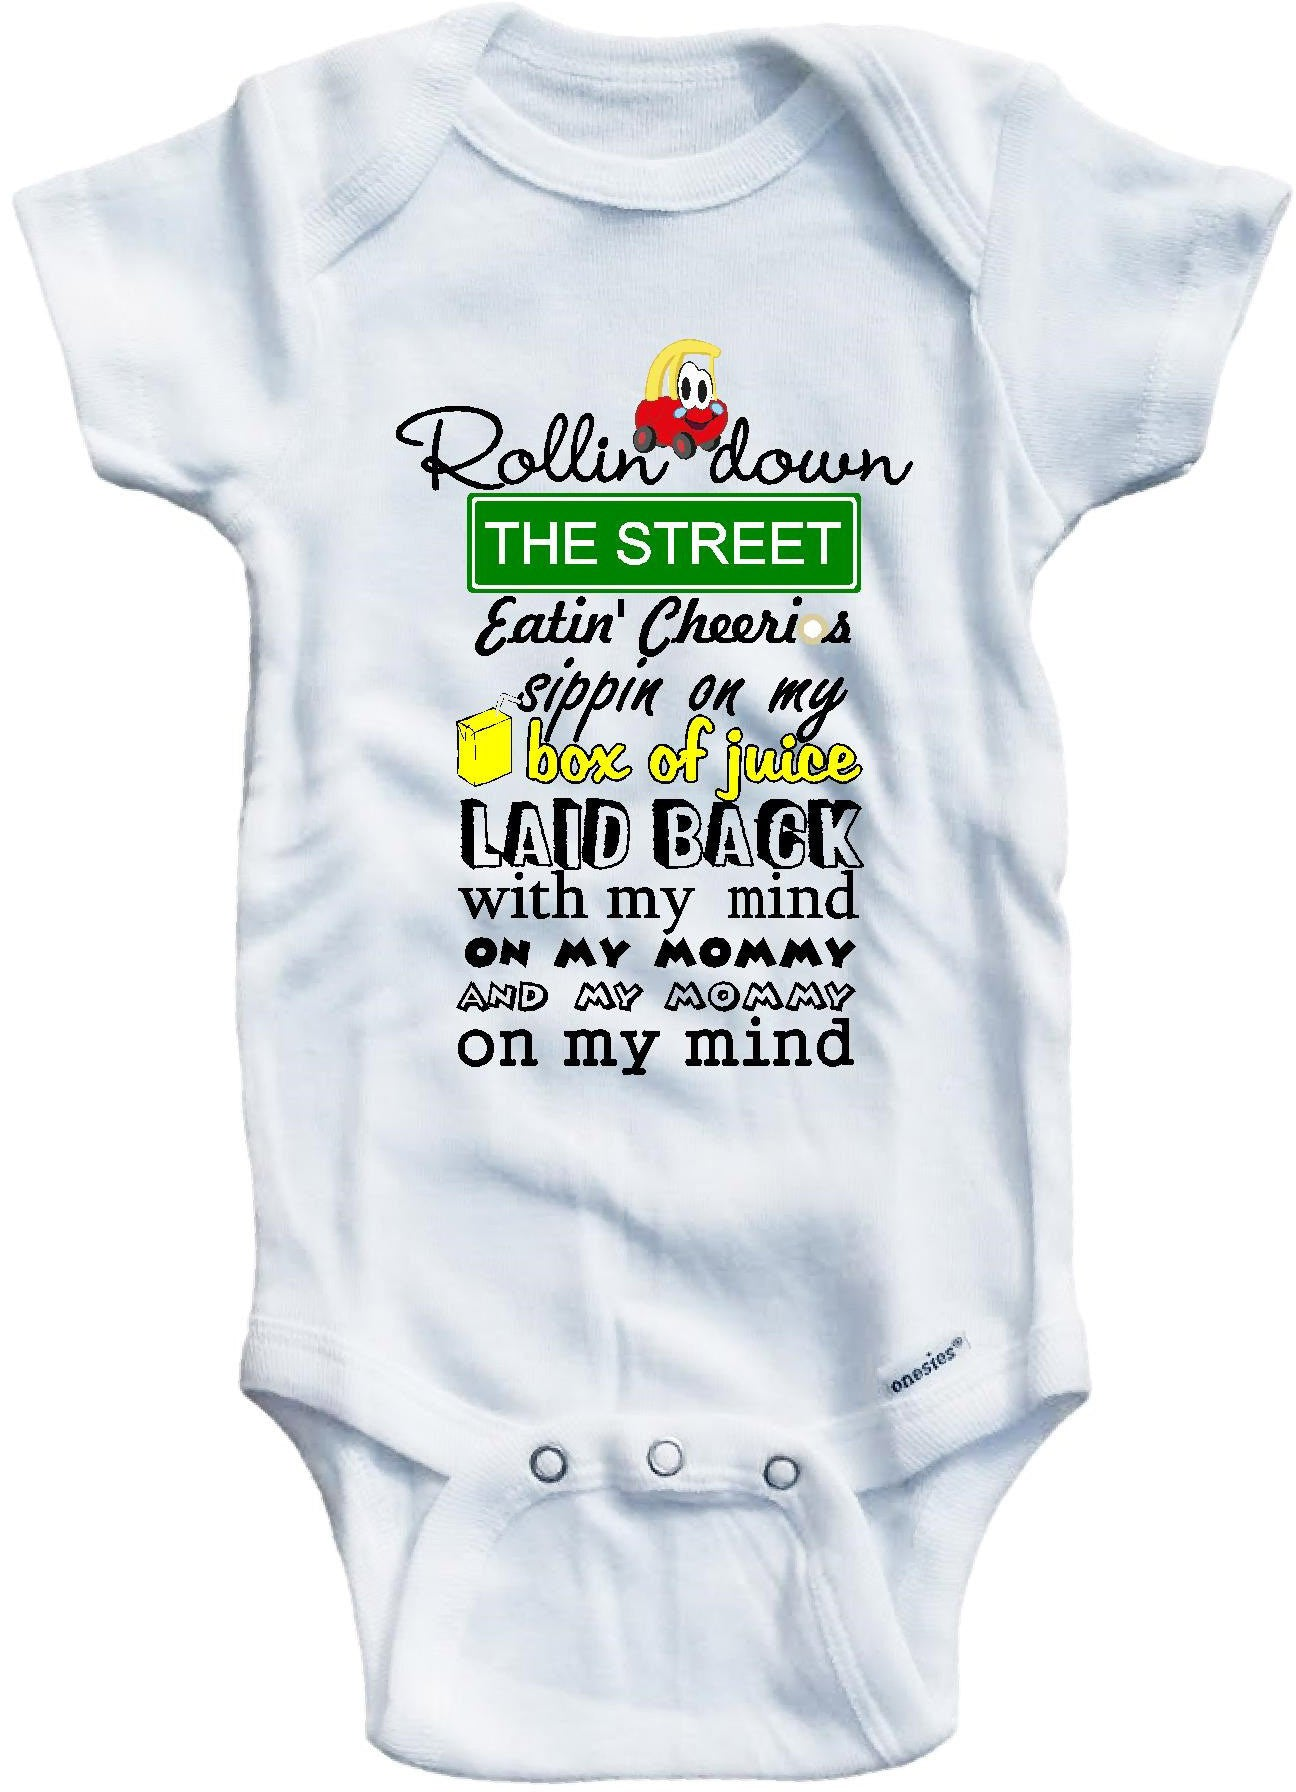 35e1b8fa5 Second version Rollin down the street funny baby onesie – Baby Tee Time